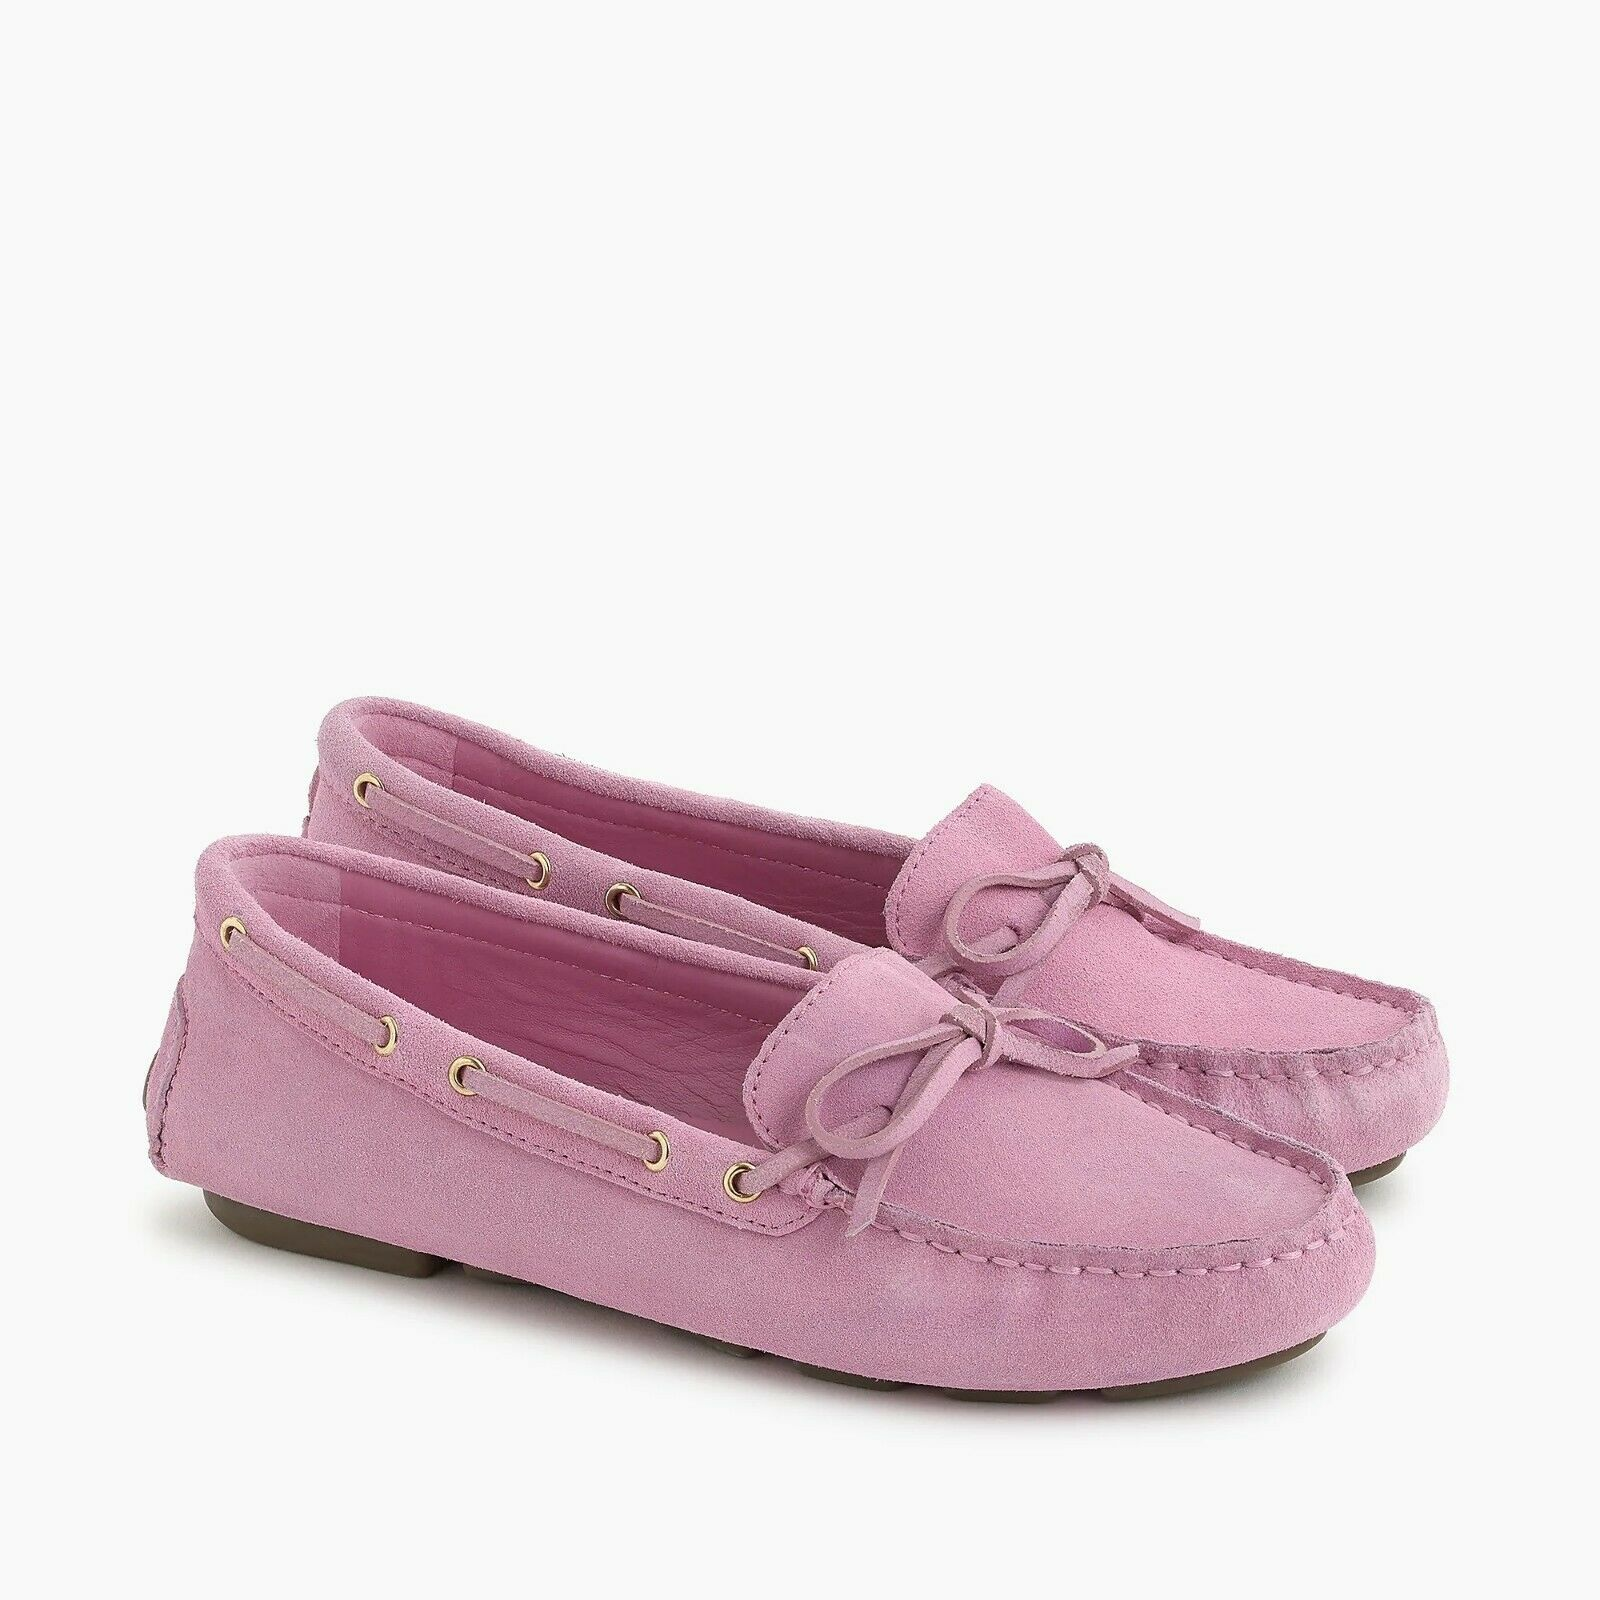 J. Crew Wouomo NIB Driving Moccasins in Suede -Sundrenched Peony - Dimensione 7.5